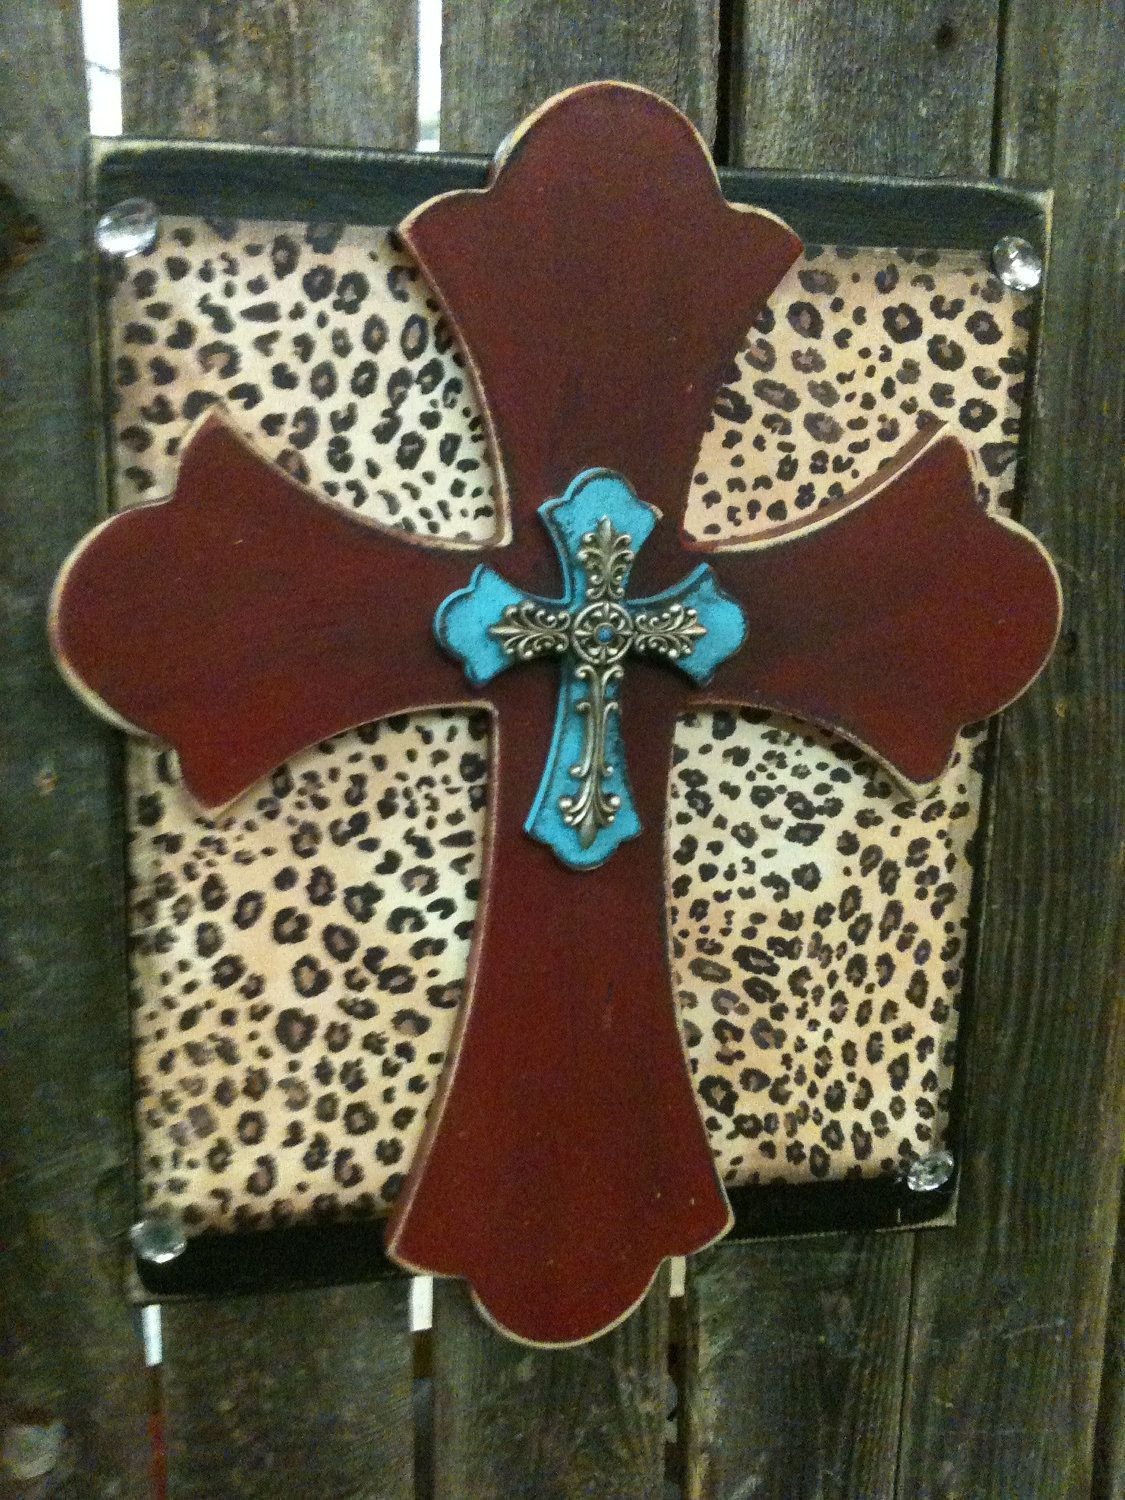 Wooden Stacked Cross Plaque - Hanging Wall Cross - Cross Home Decor - Decorative Cross - Leopard Cheeta Red Tourquoise Cross